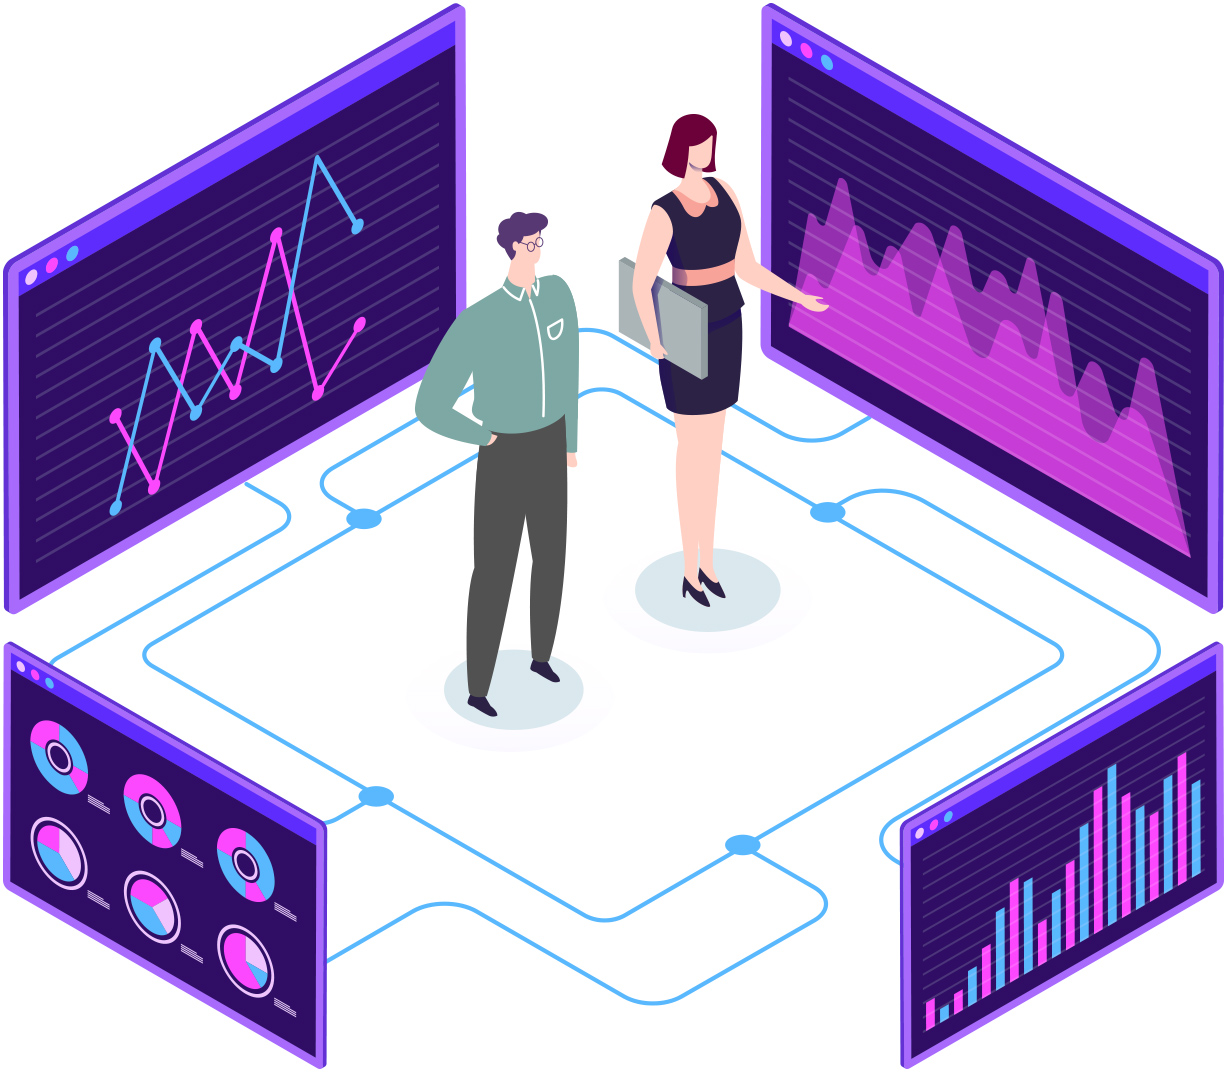 Designed image of a man and women in the center, surrounded by four computer screens showing different data in graphs